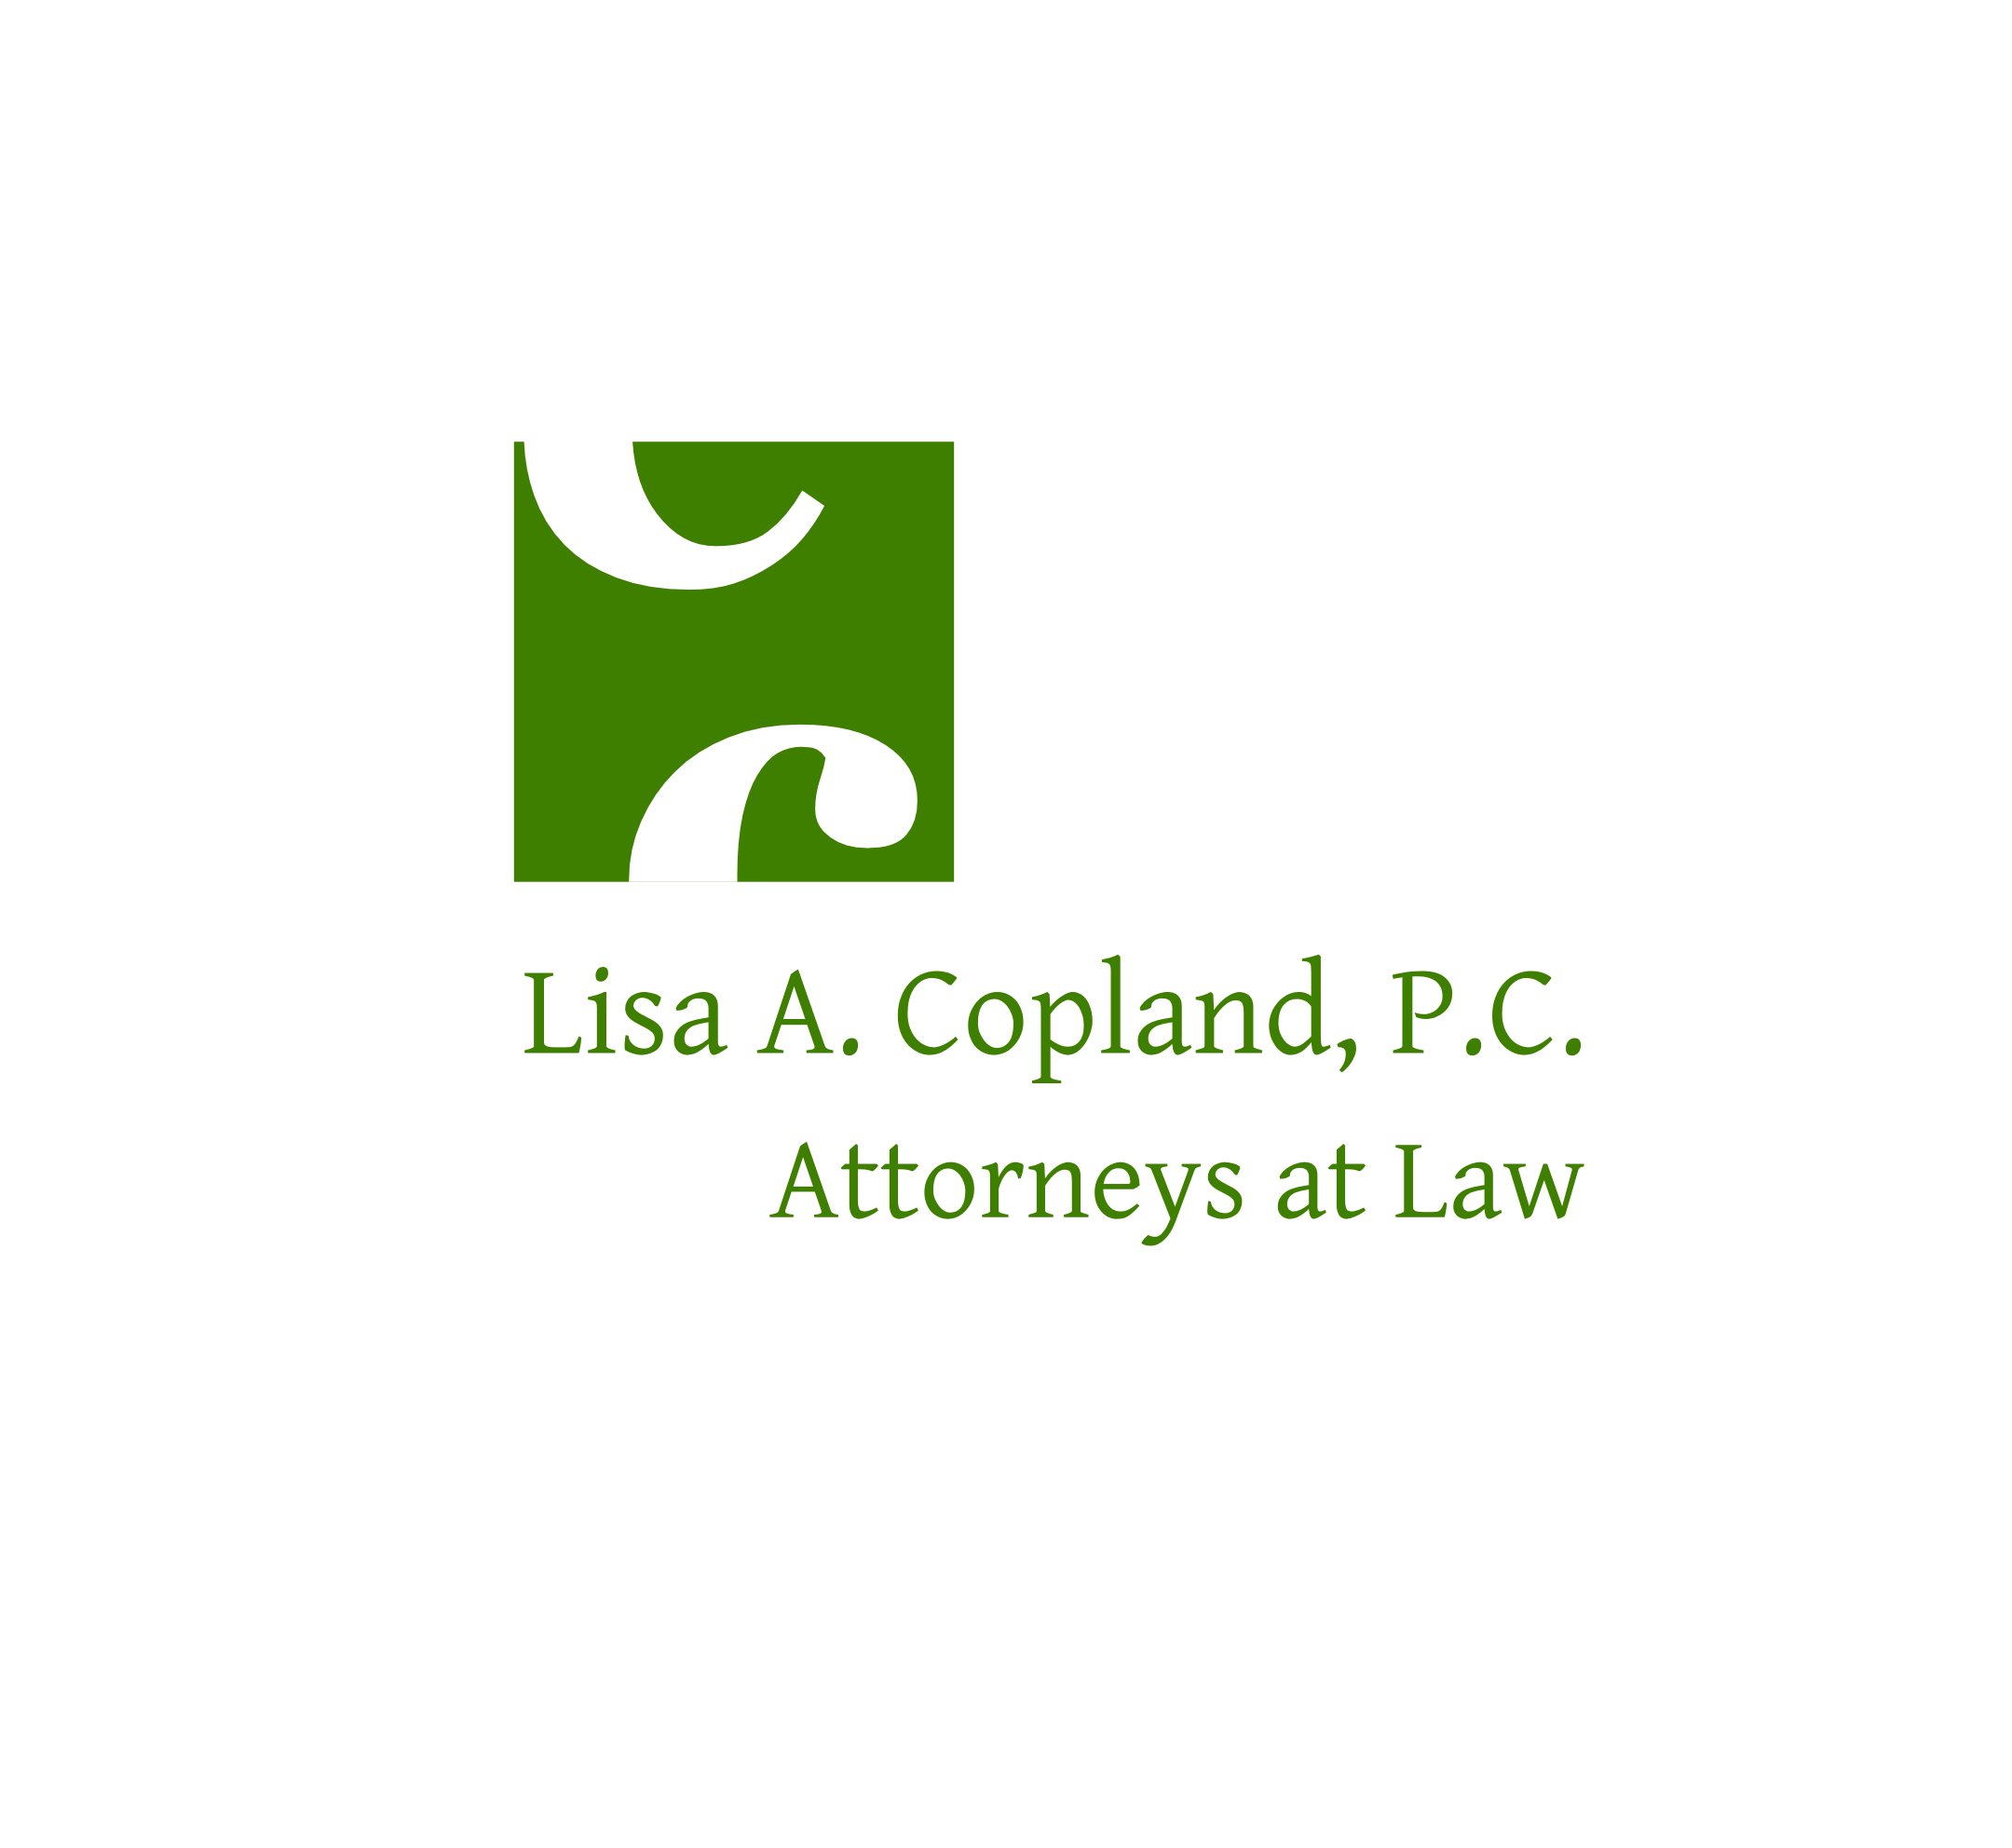 Lisa A. Copland, P.C. Profile Picture